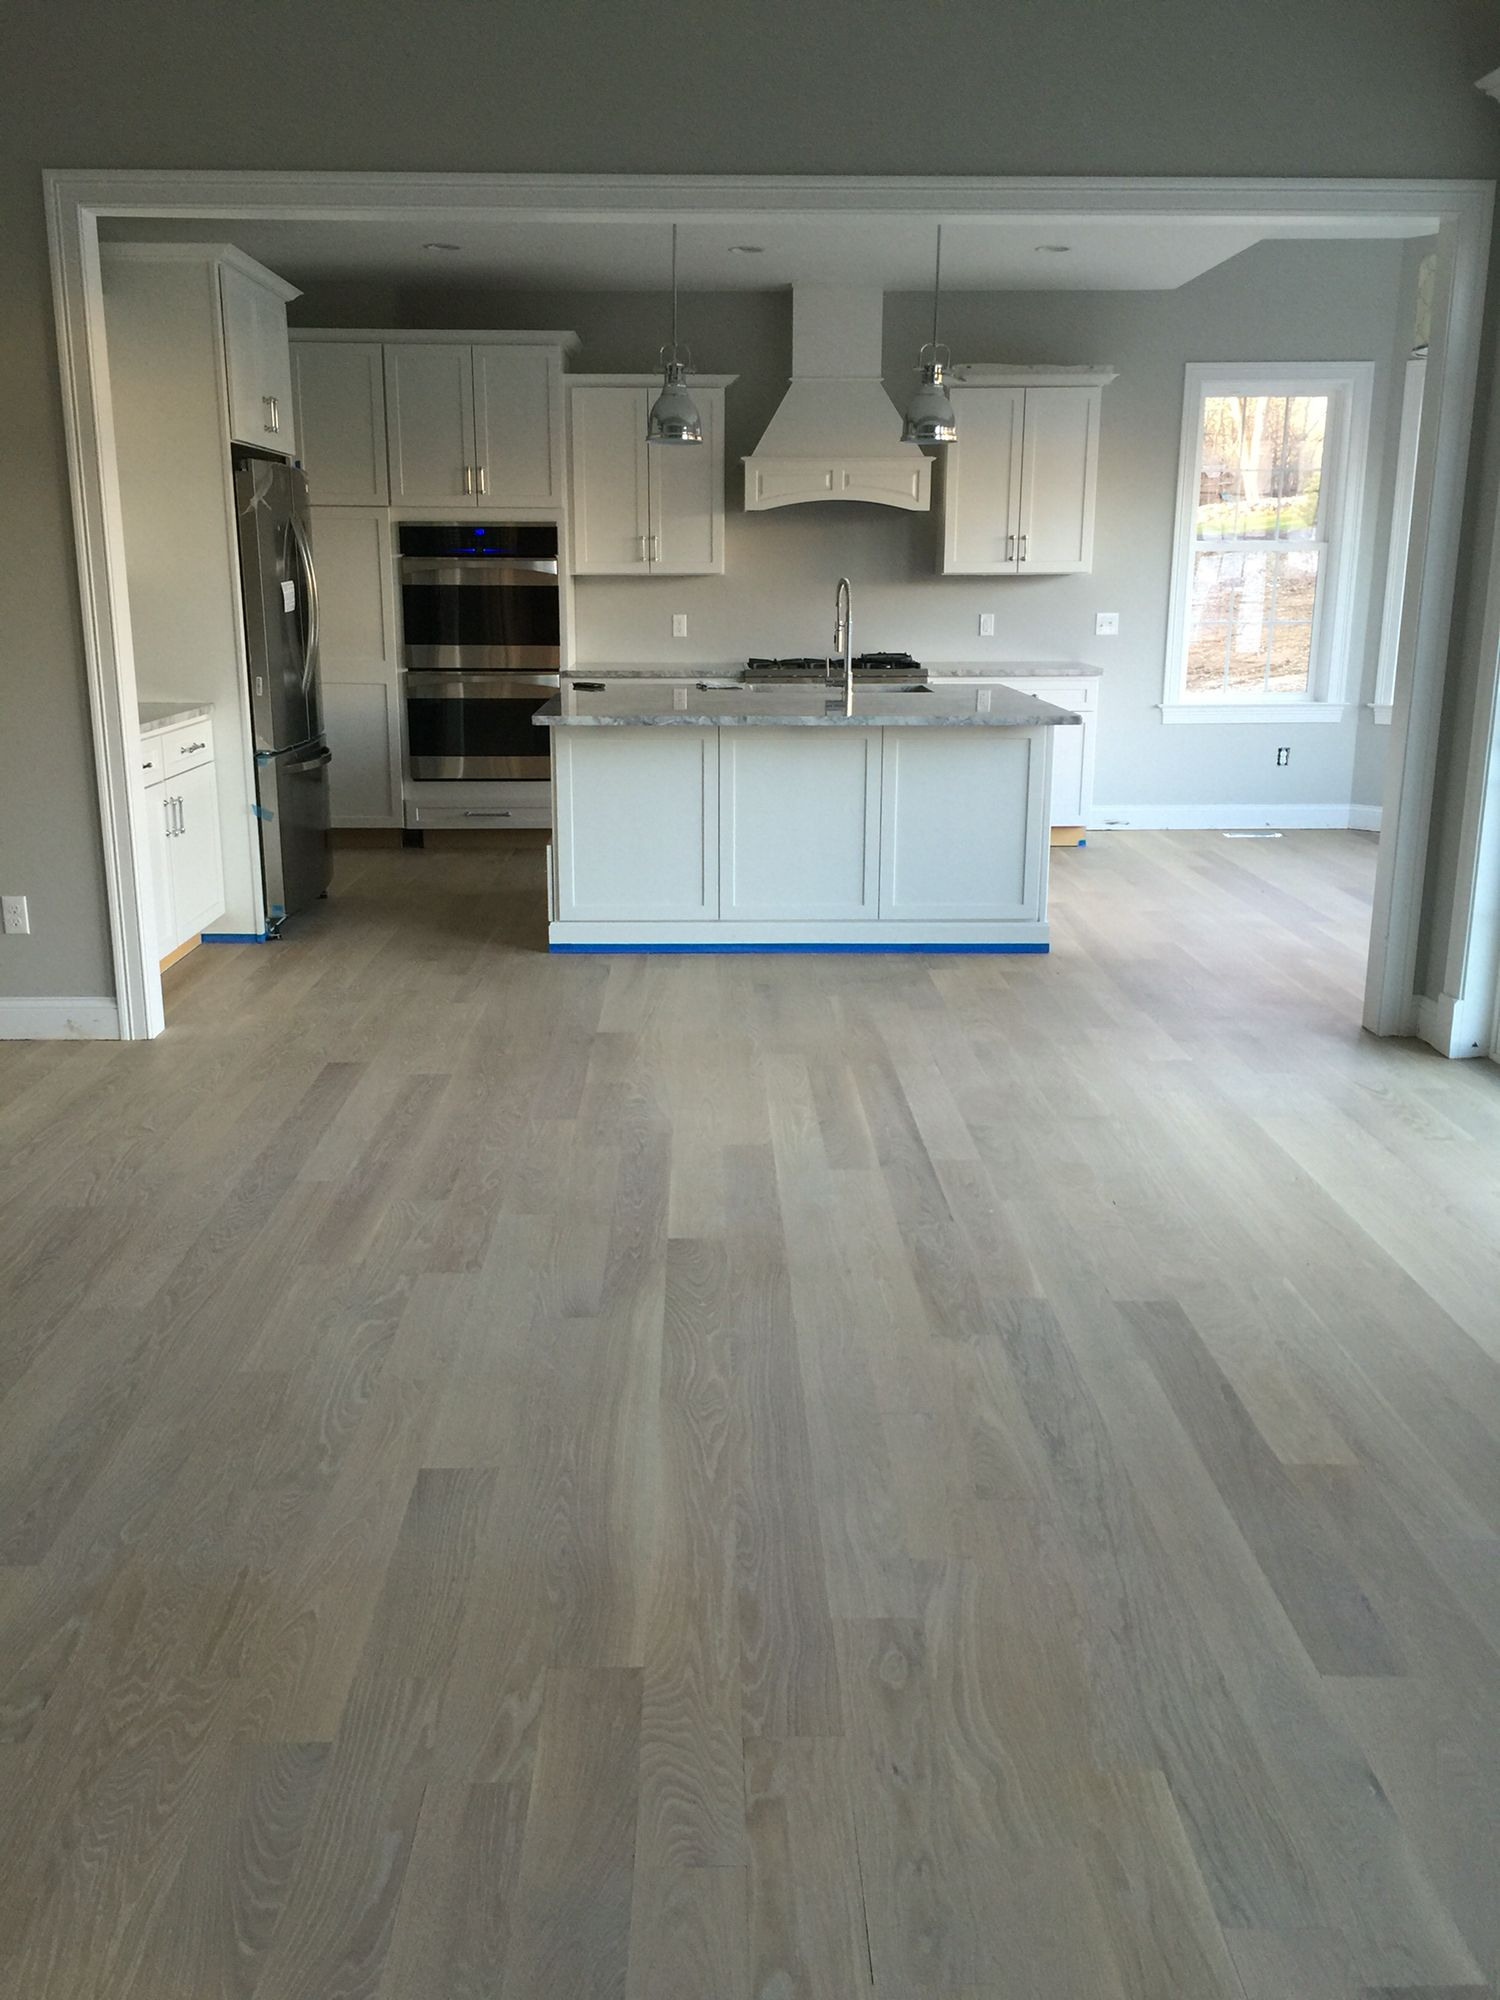 Rubio Monocoat Smoke Oil On 5 Inch Wide White Oak Planks